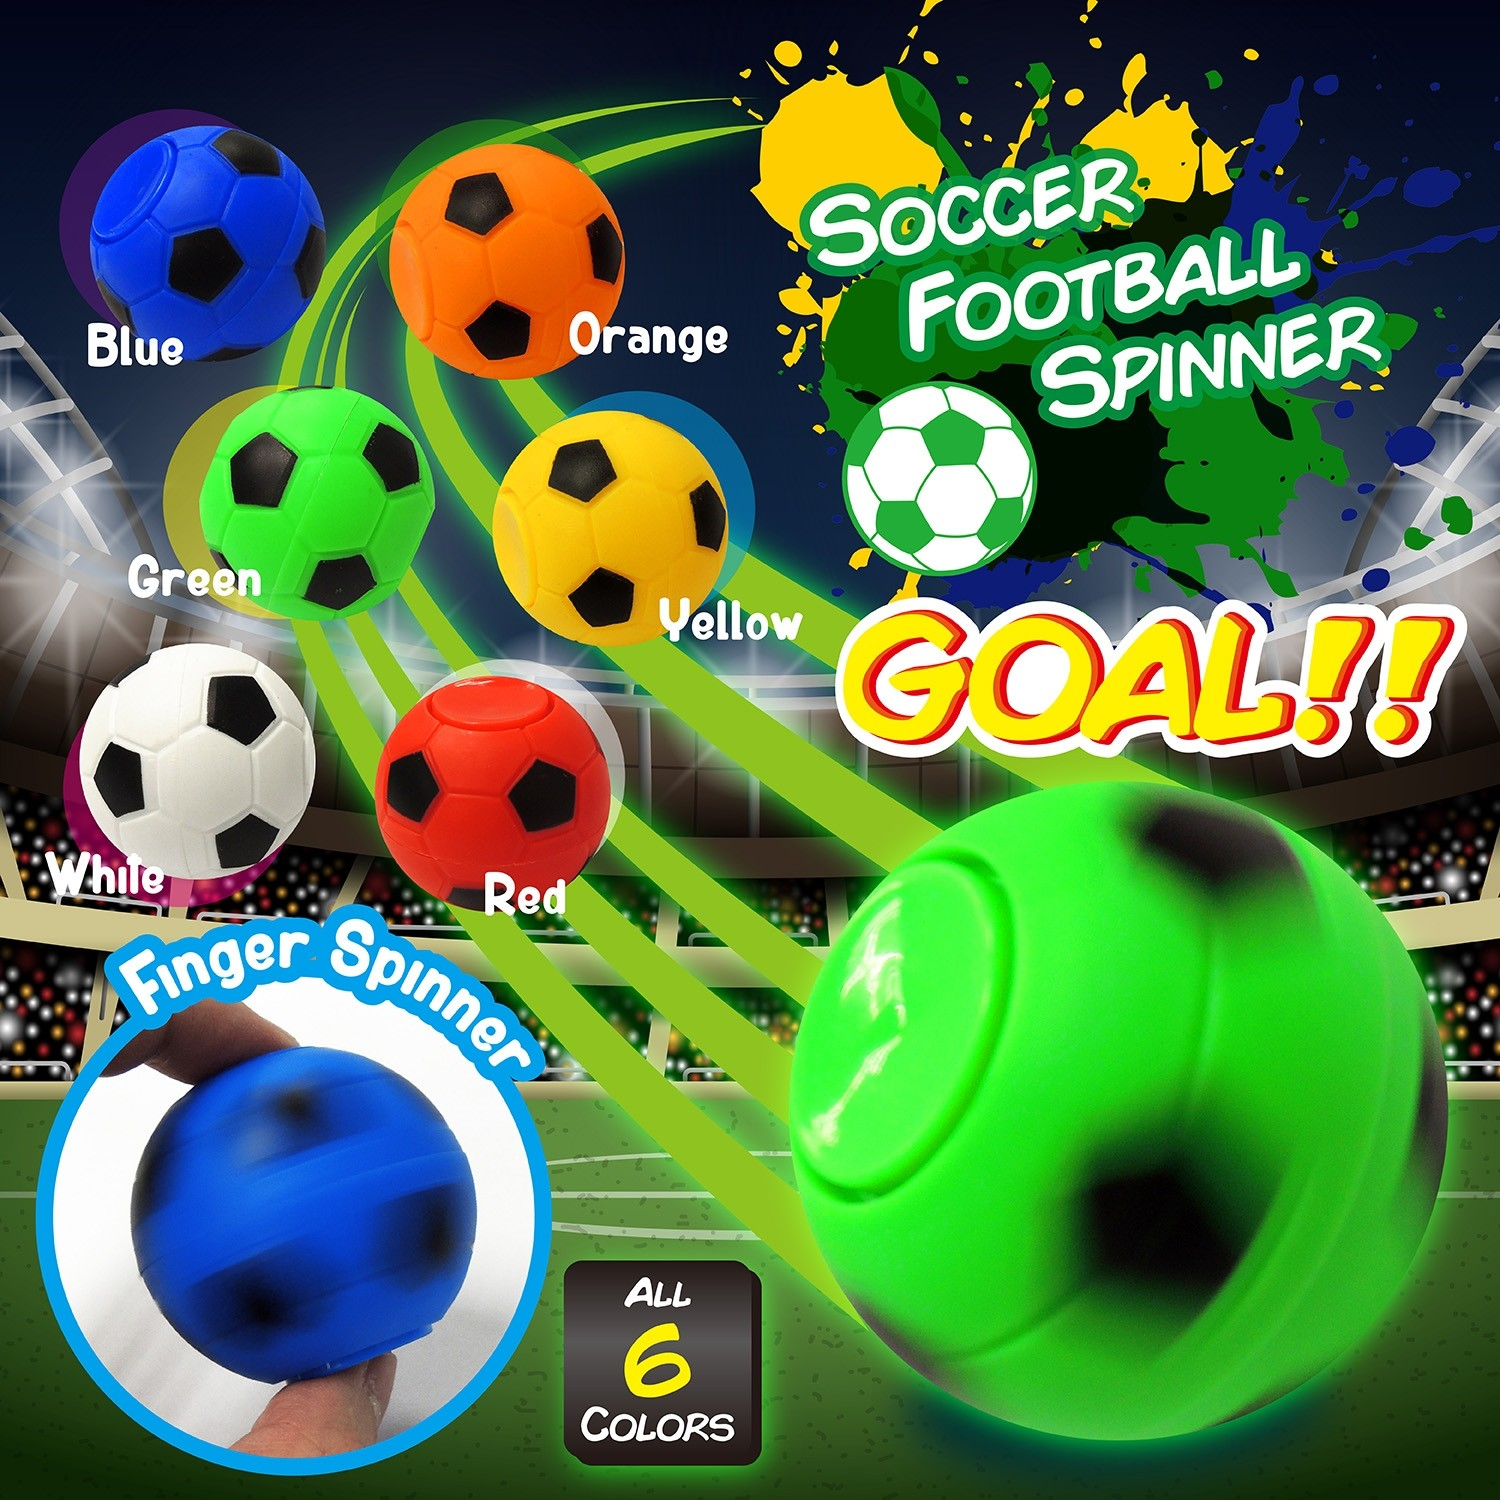 Soccer Football Spinner